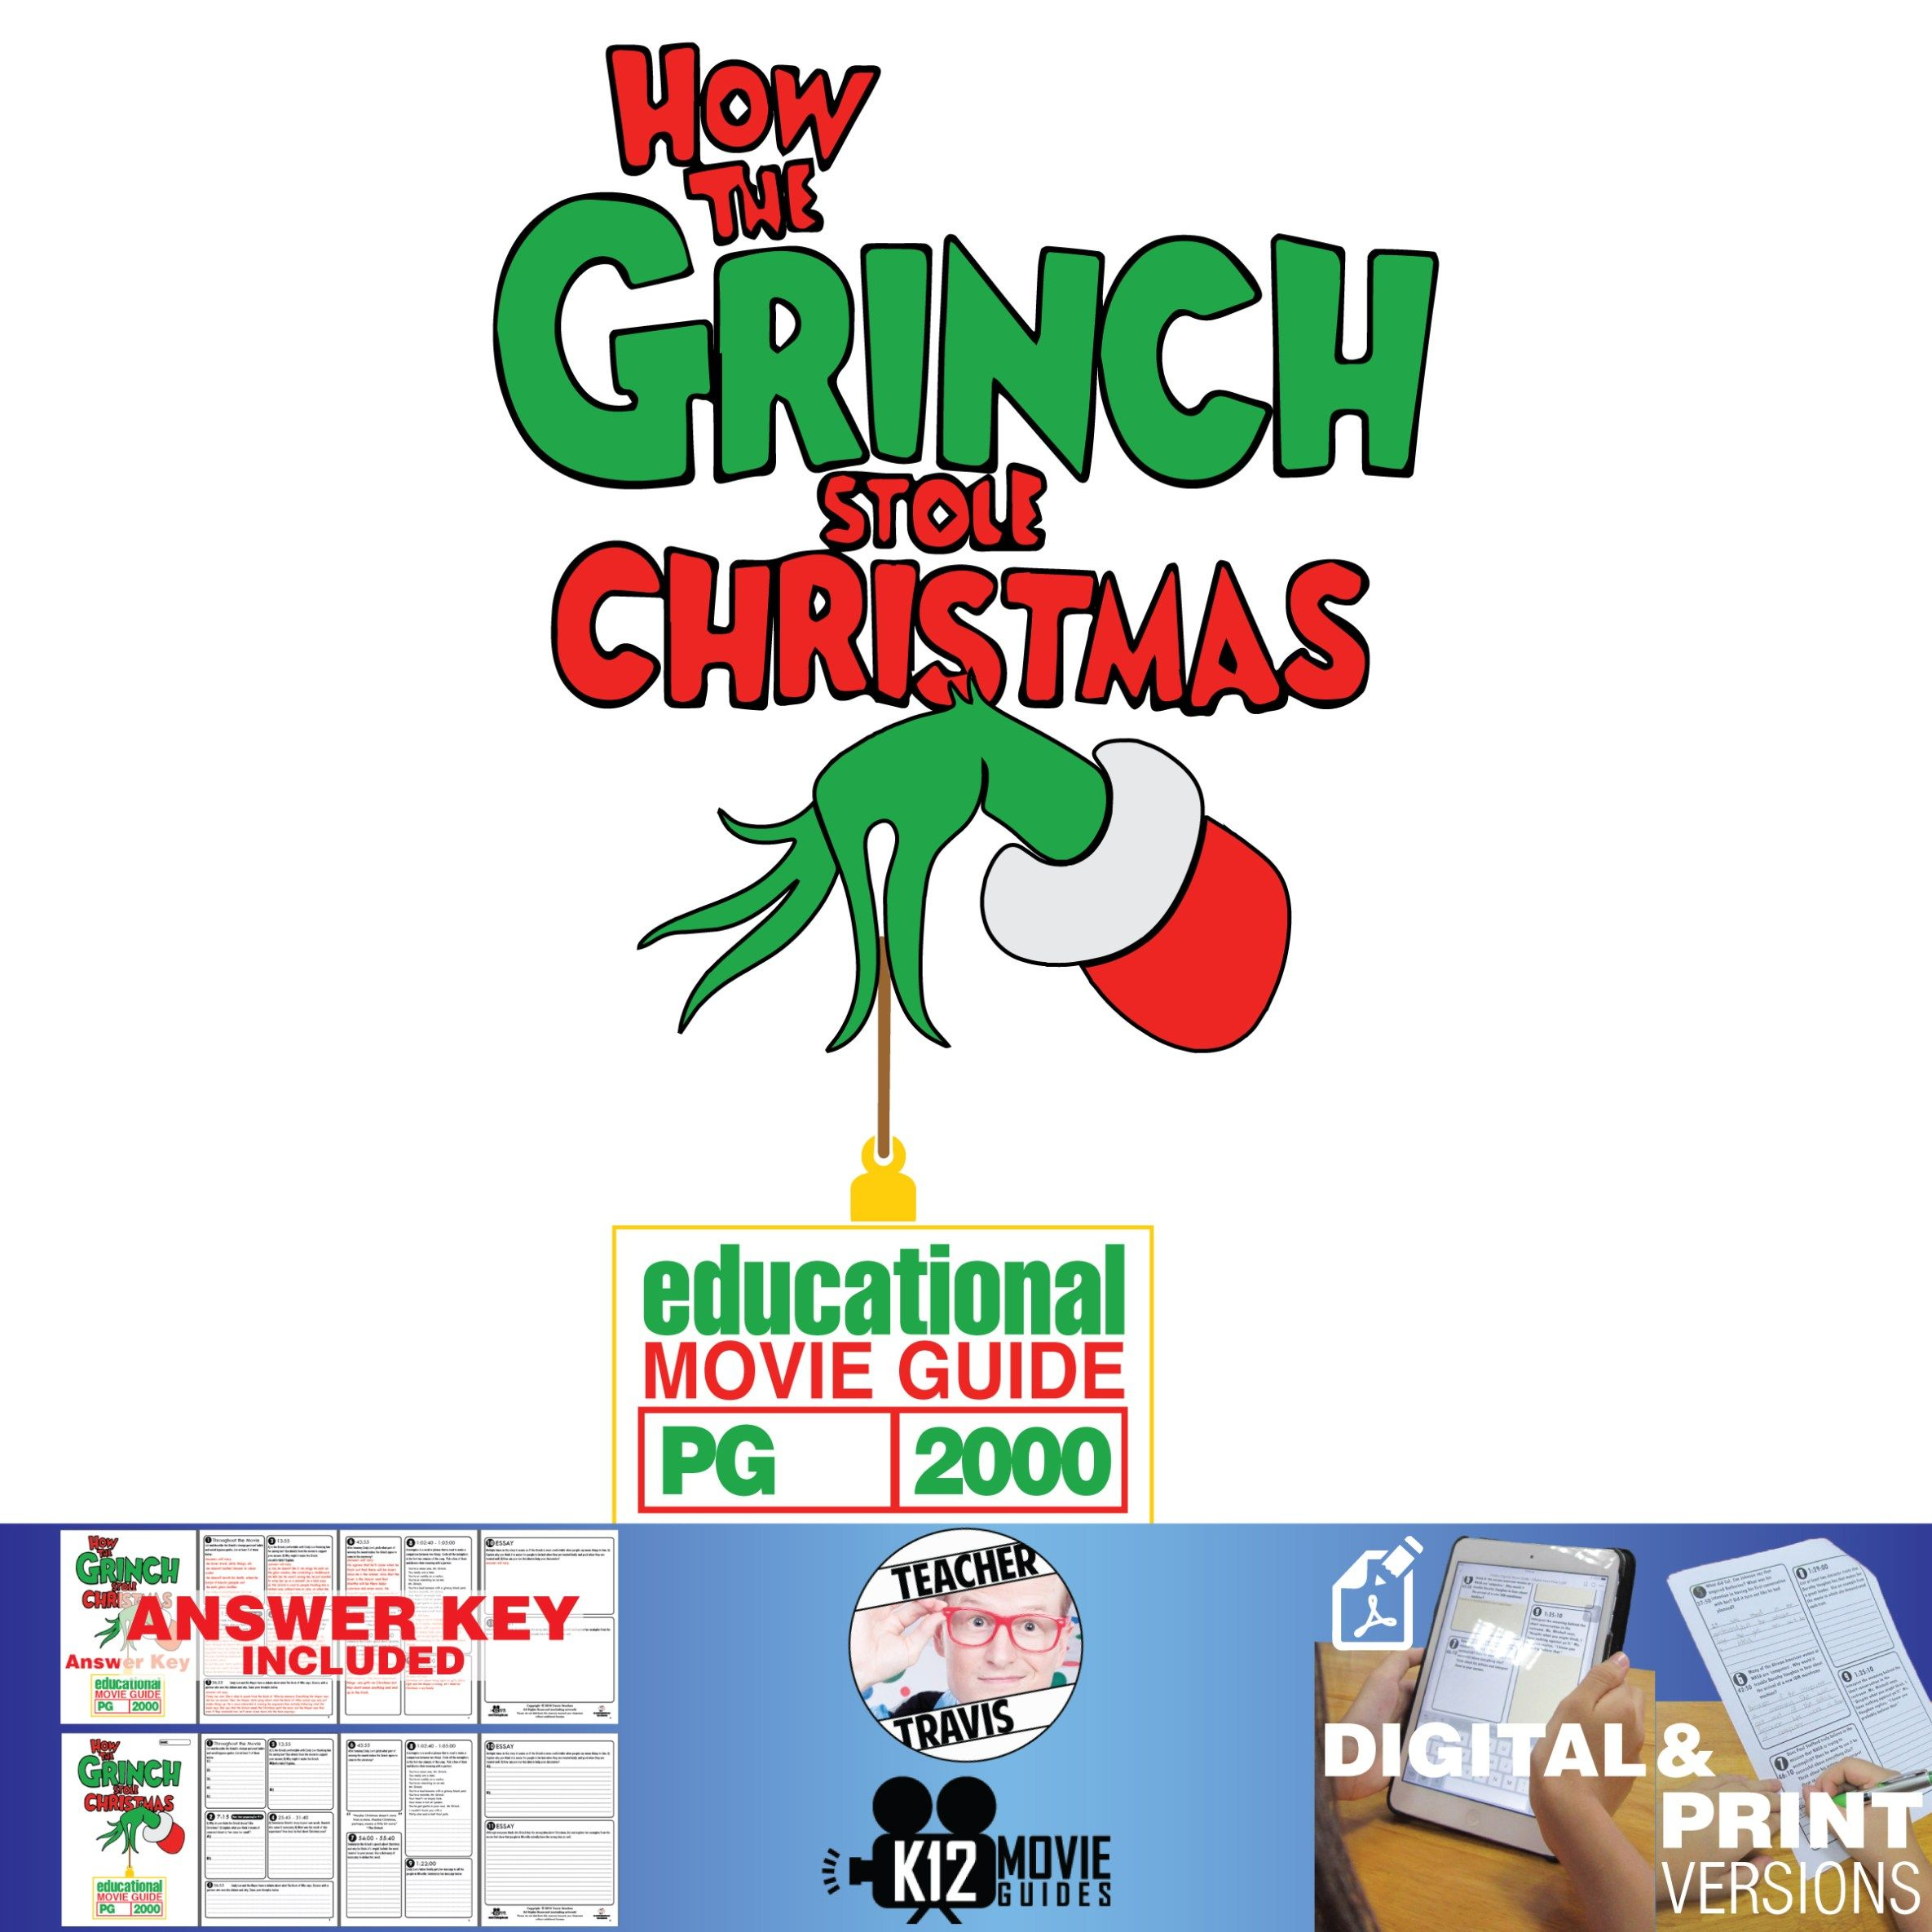 How The Grinch Stole Christmas Movie Guide With Images